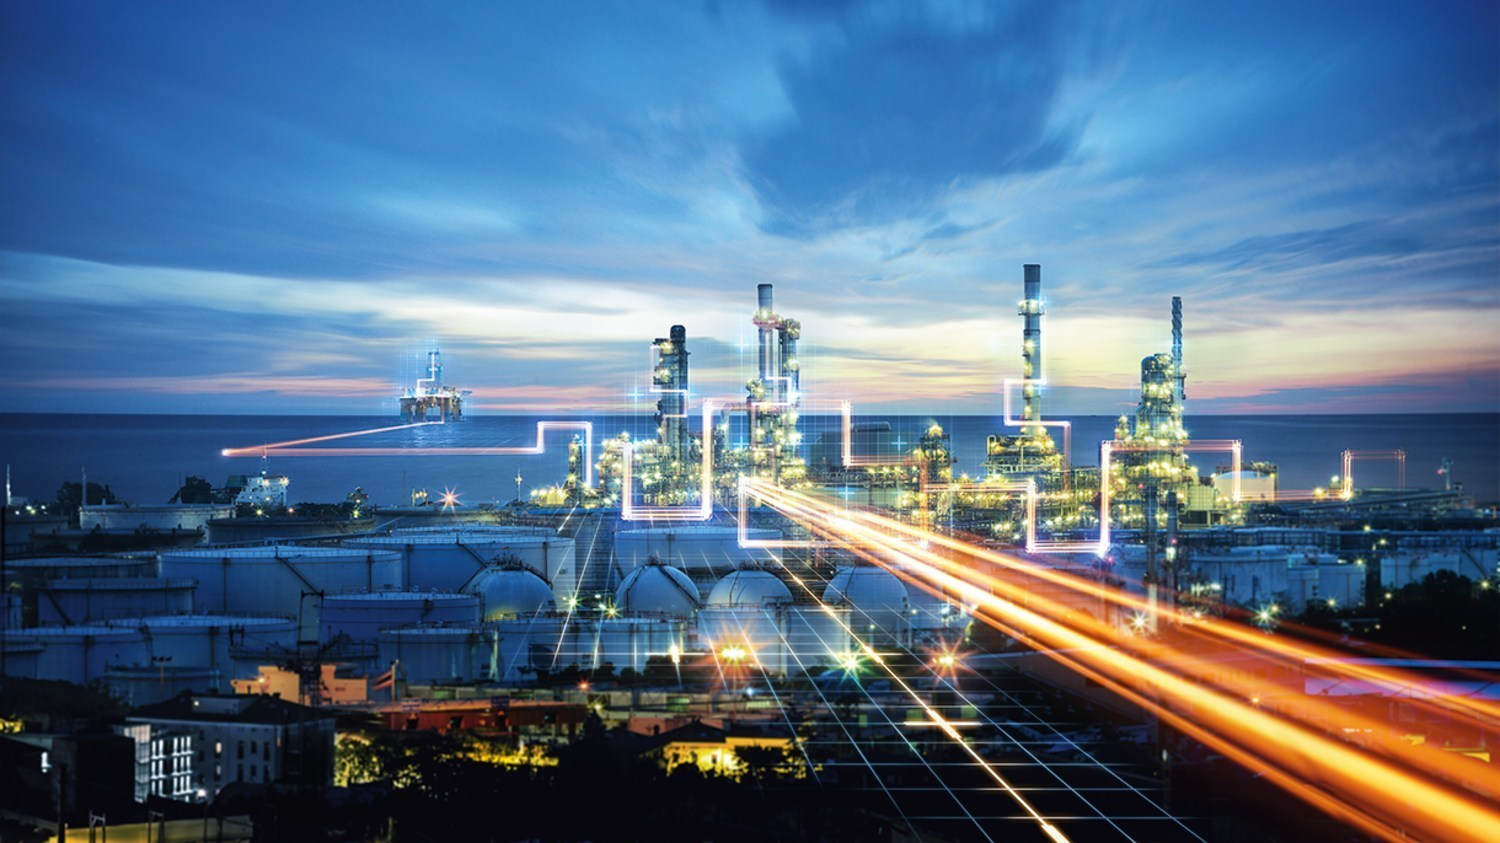 New Siemens solution optimizes the performance of capital